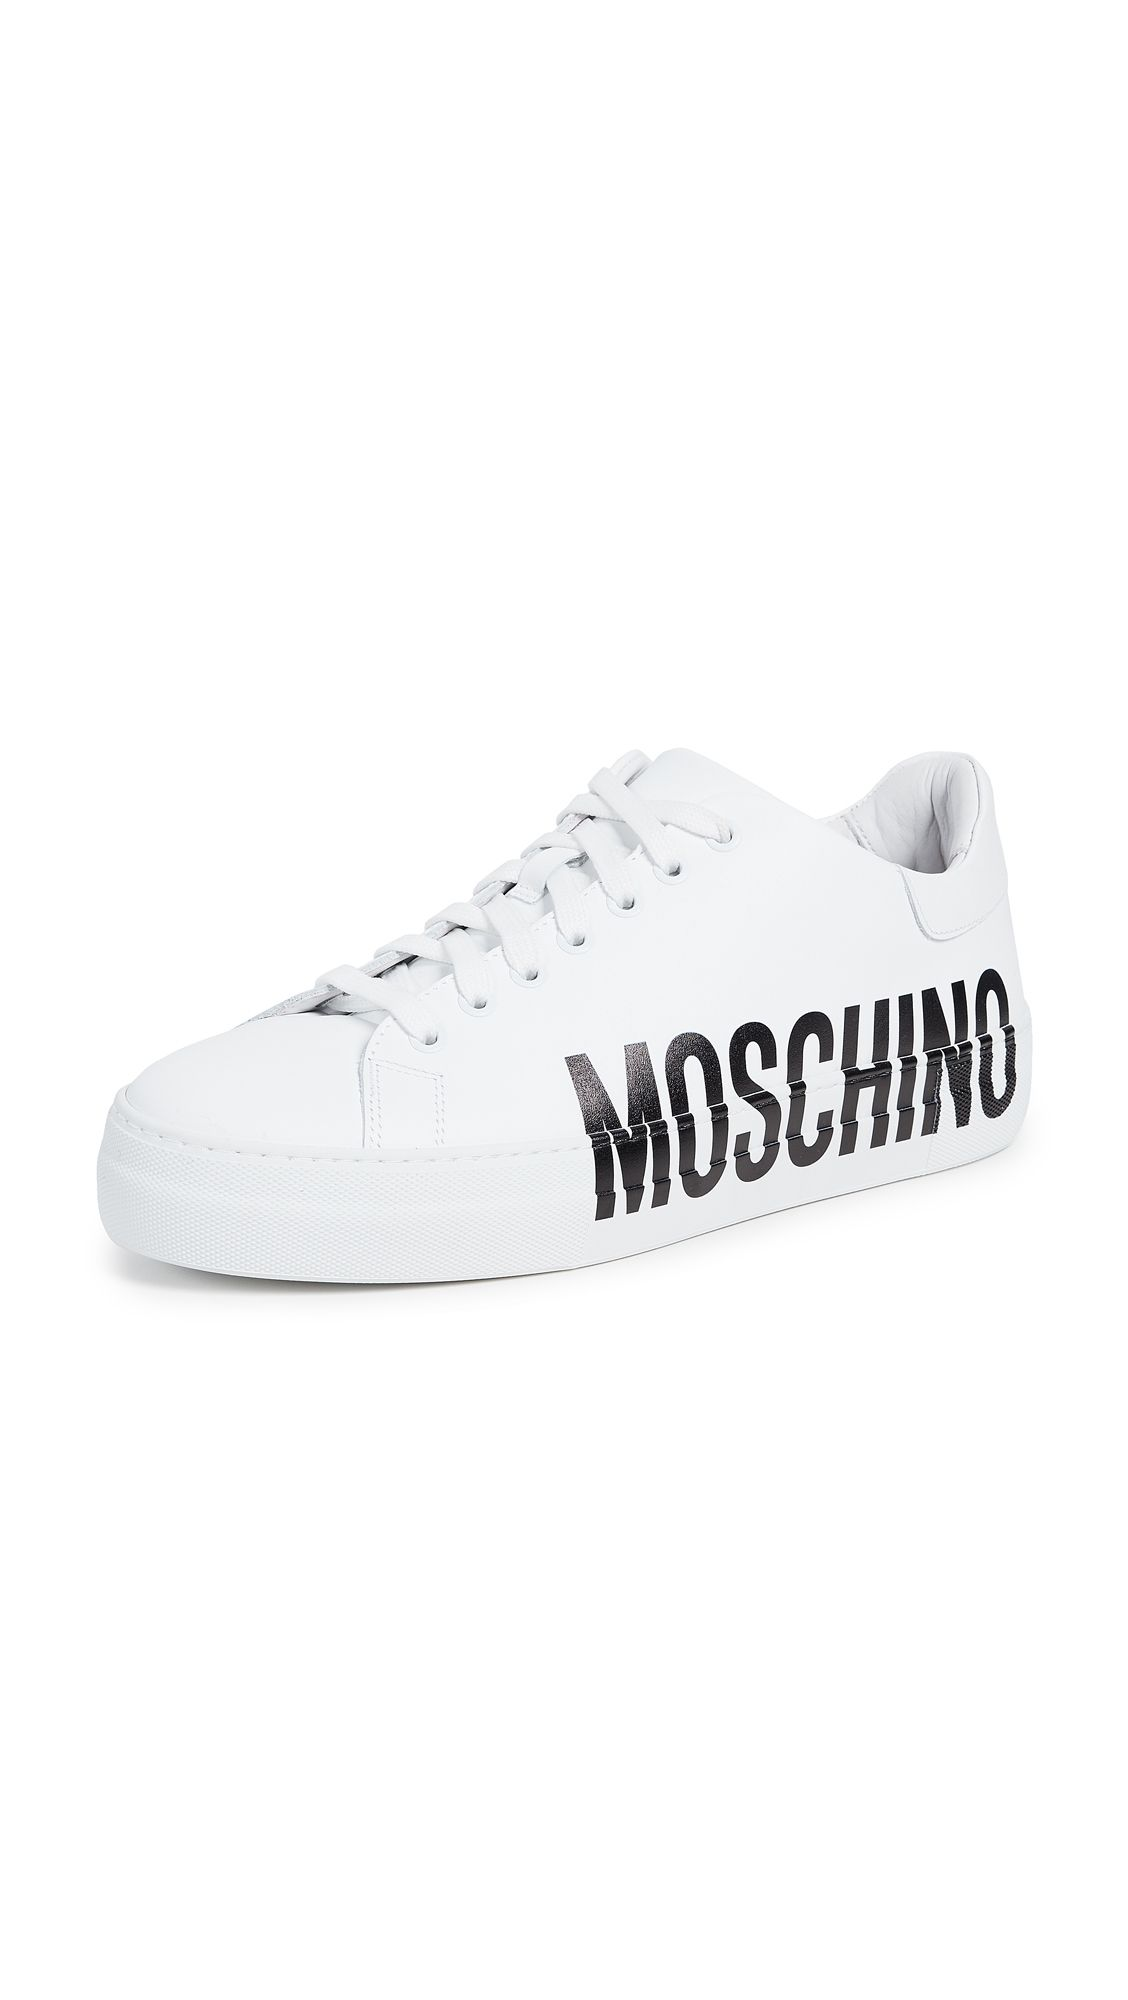 LOGO SNEAKERS. #moschino #shoes